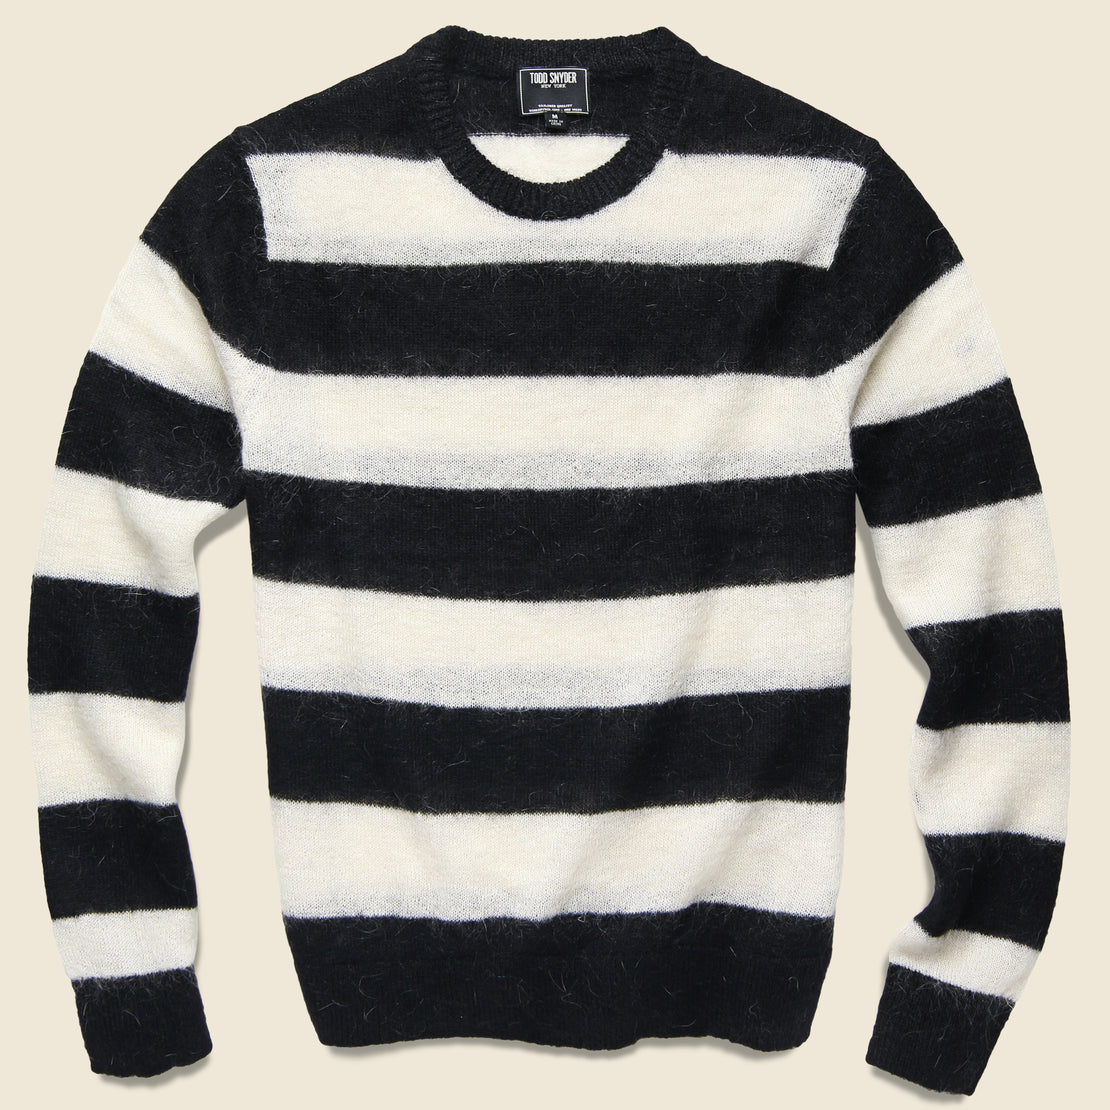 Todd Snyder Mohair Rugby Sweater - Black/White